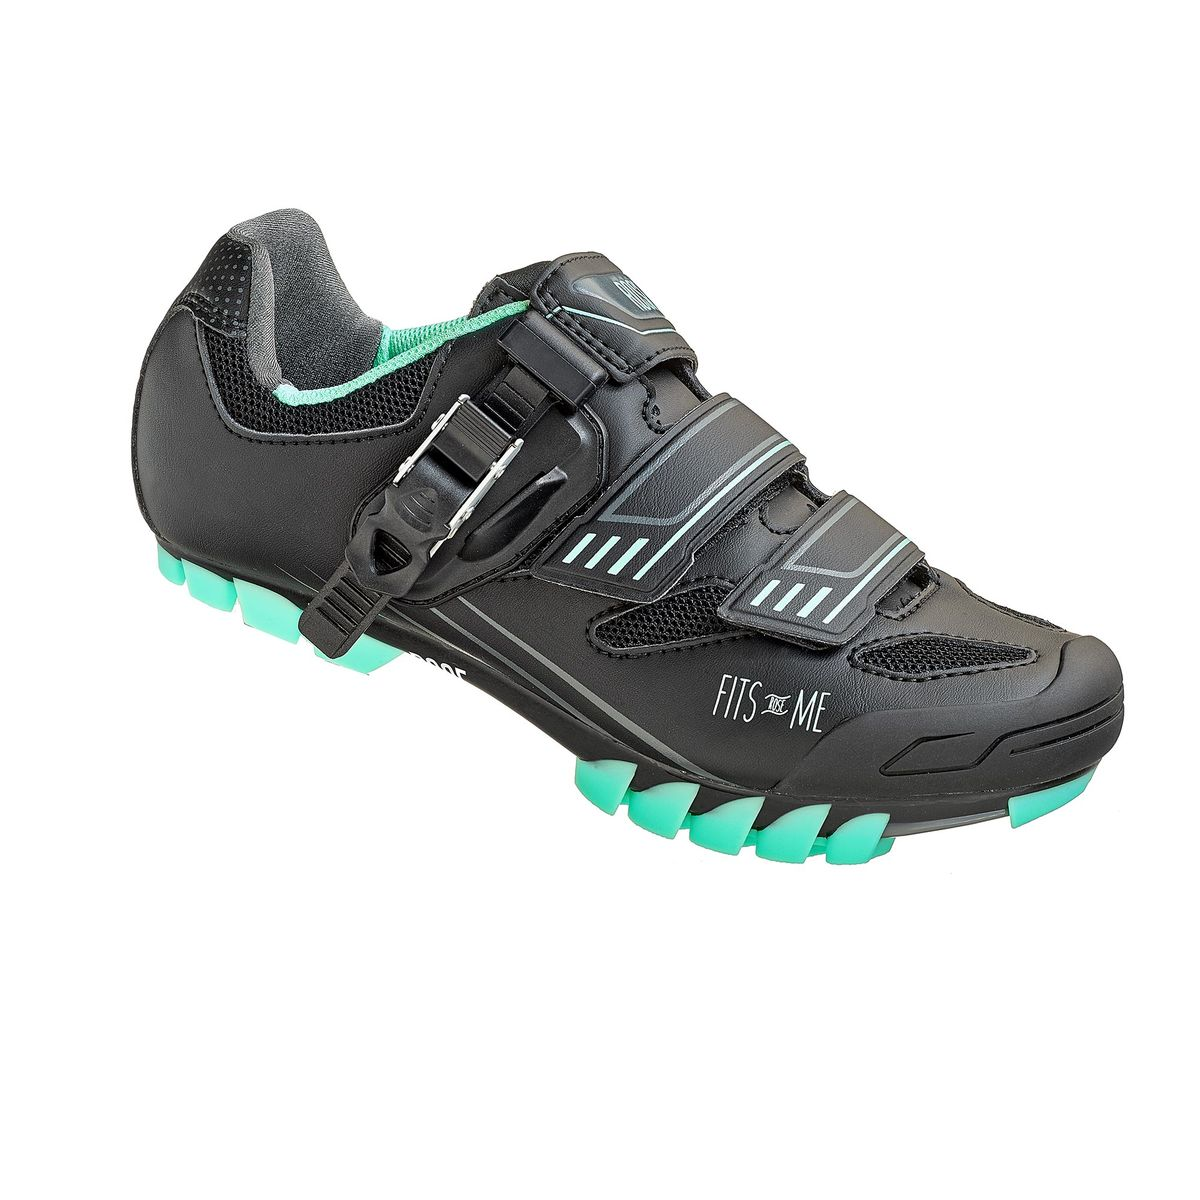 RMS 09 women's MTB shoes